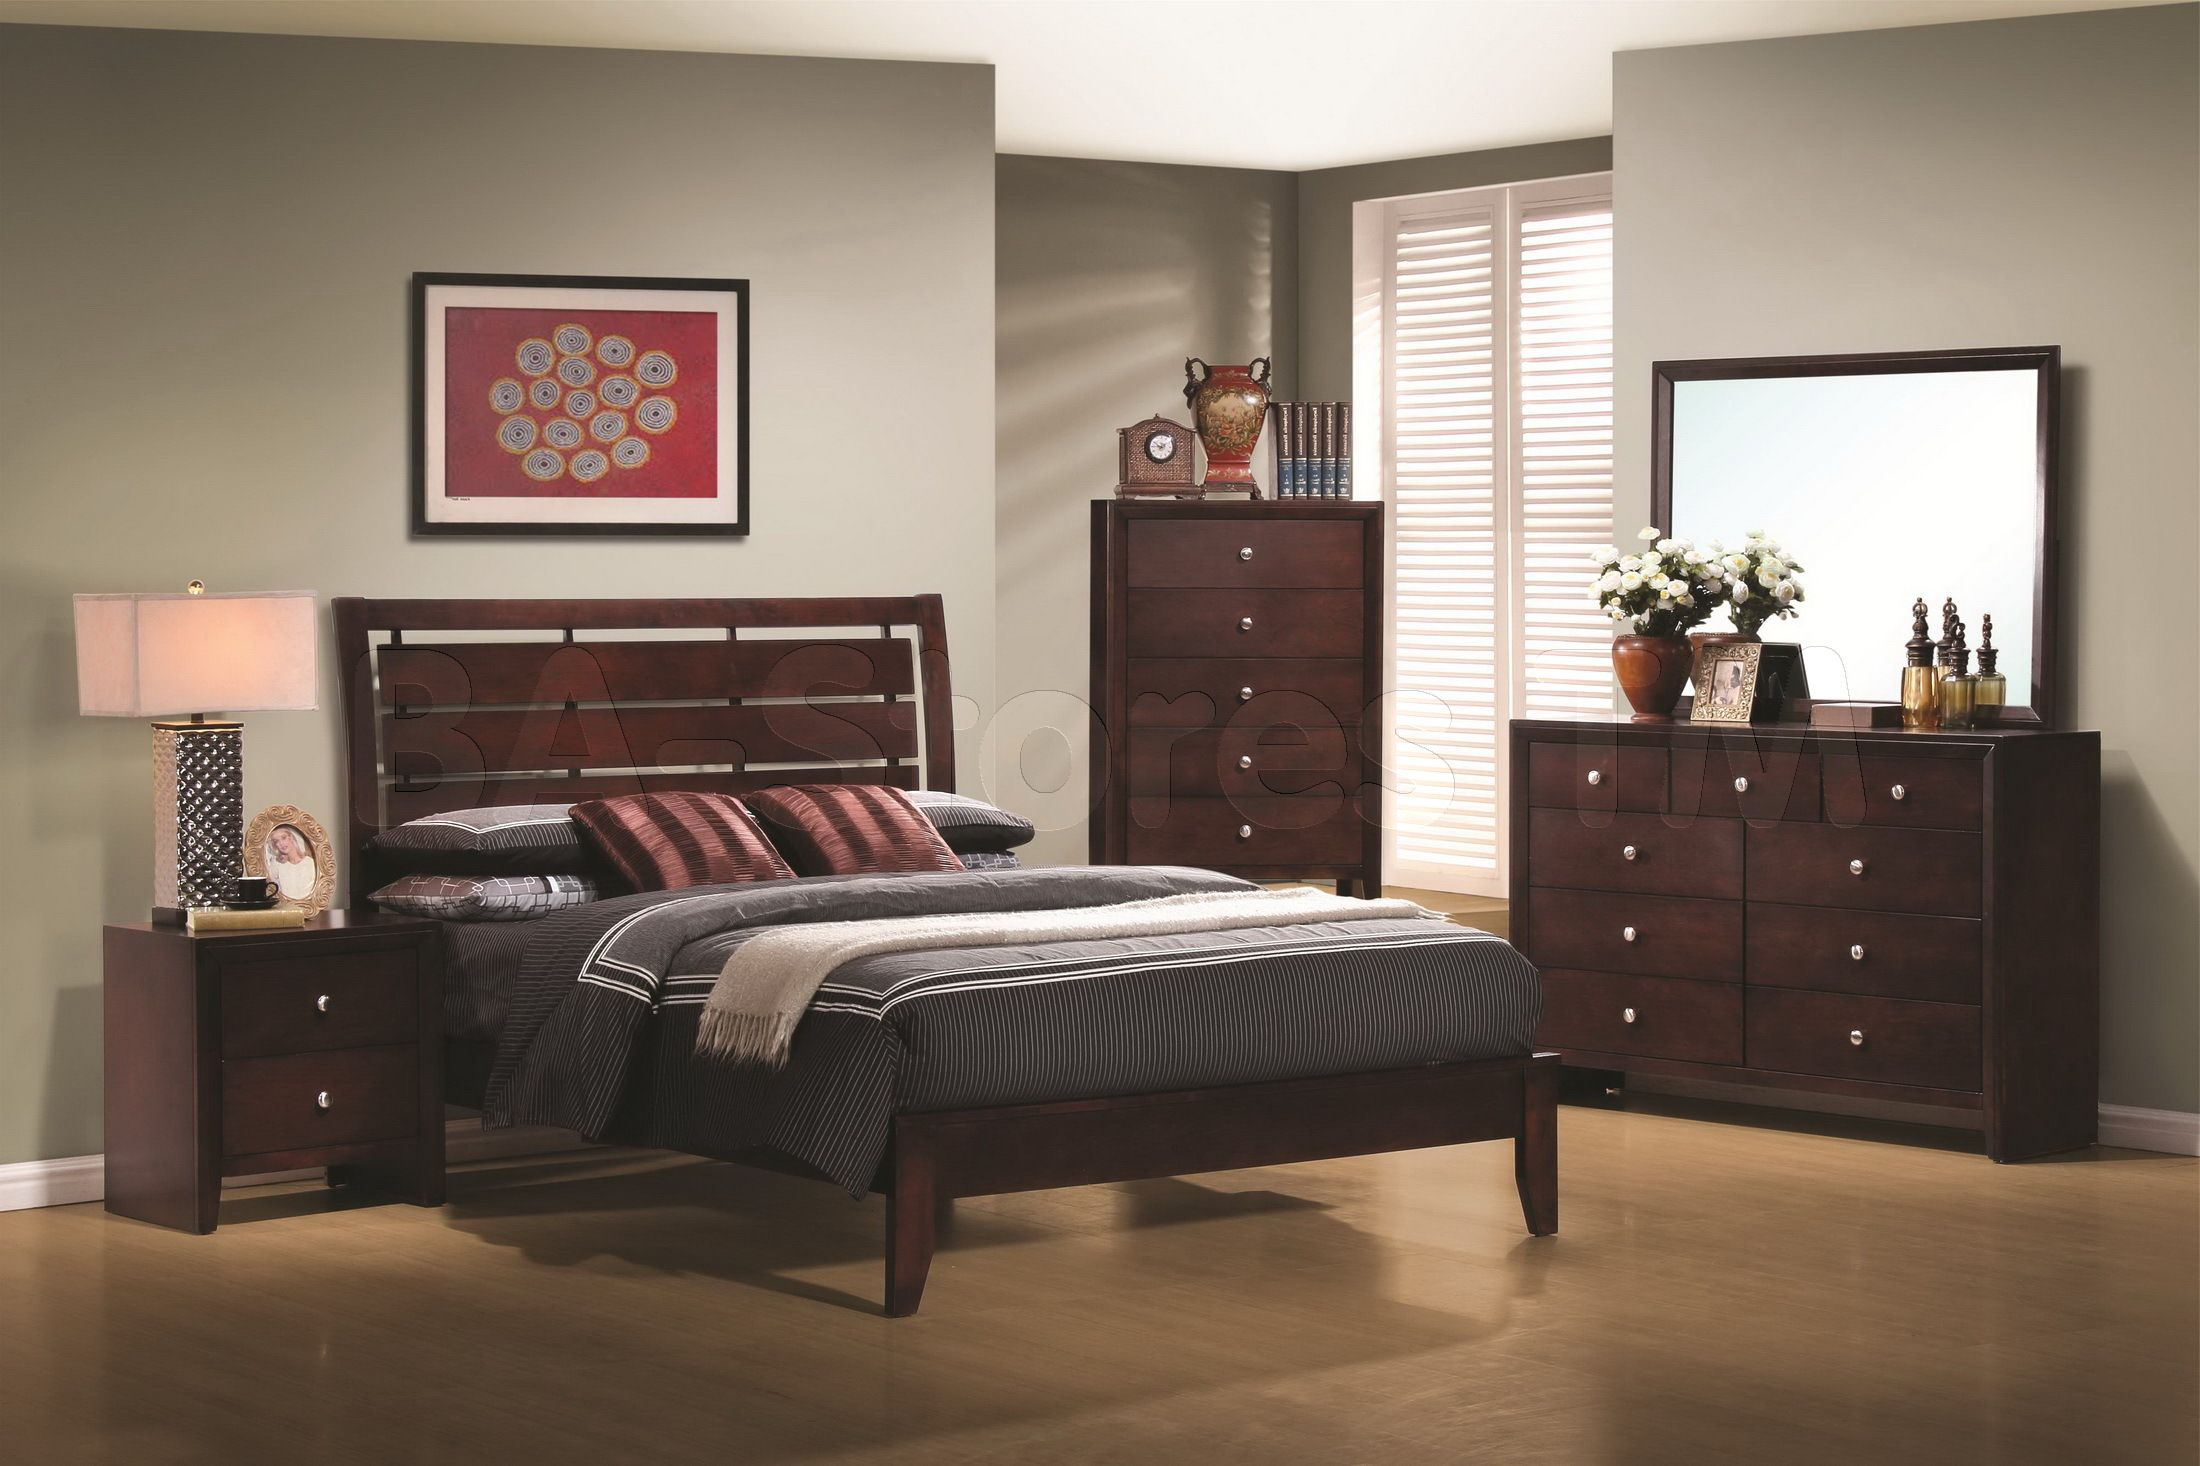 Serenity 5 PC Bedroom Set (Bed, Nightstand, Dresser, Mirror And Chest)